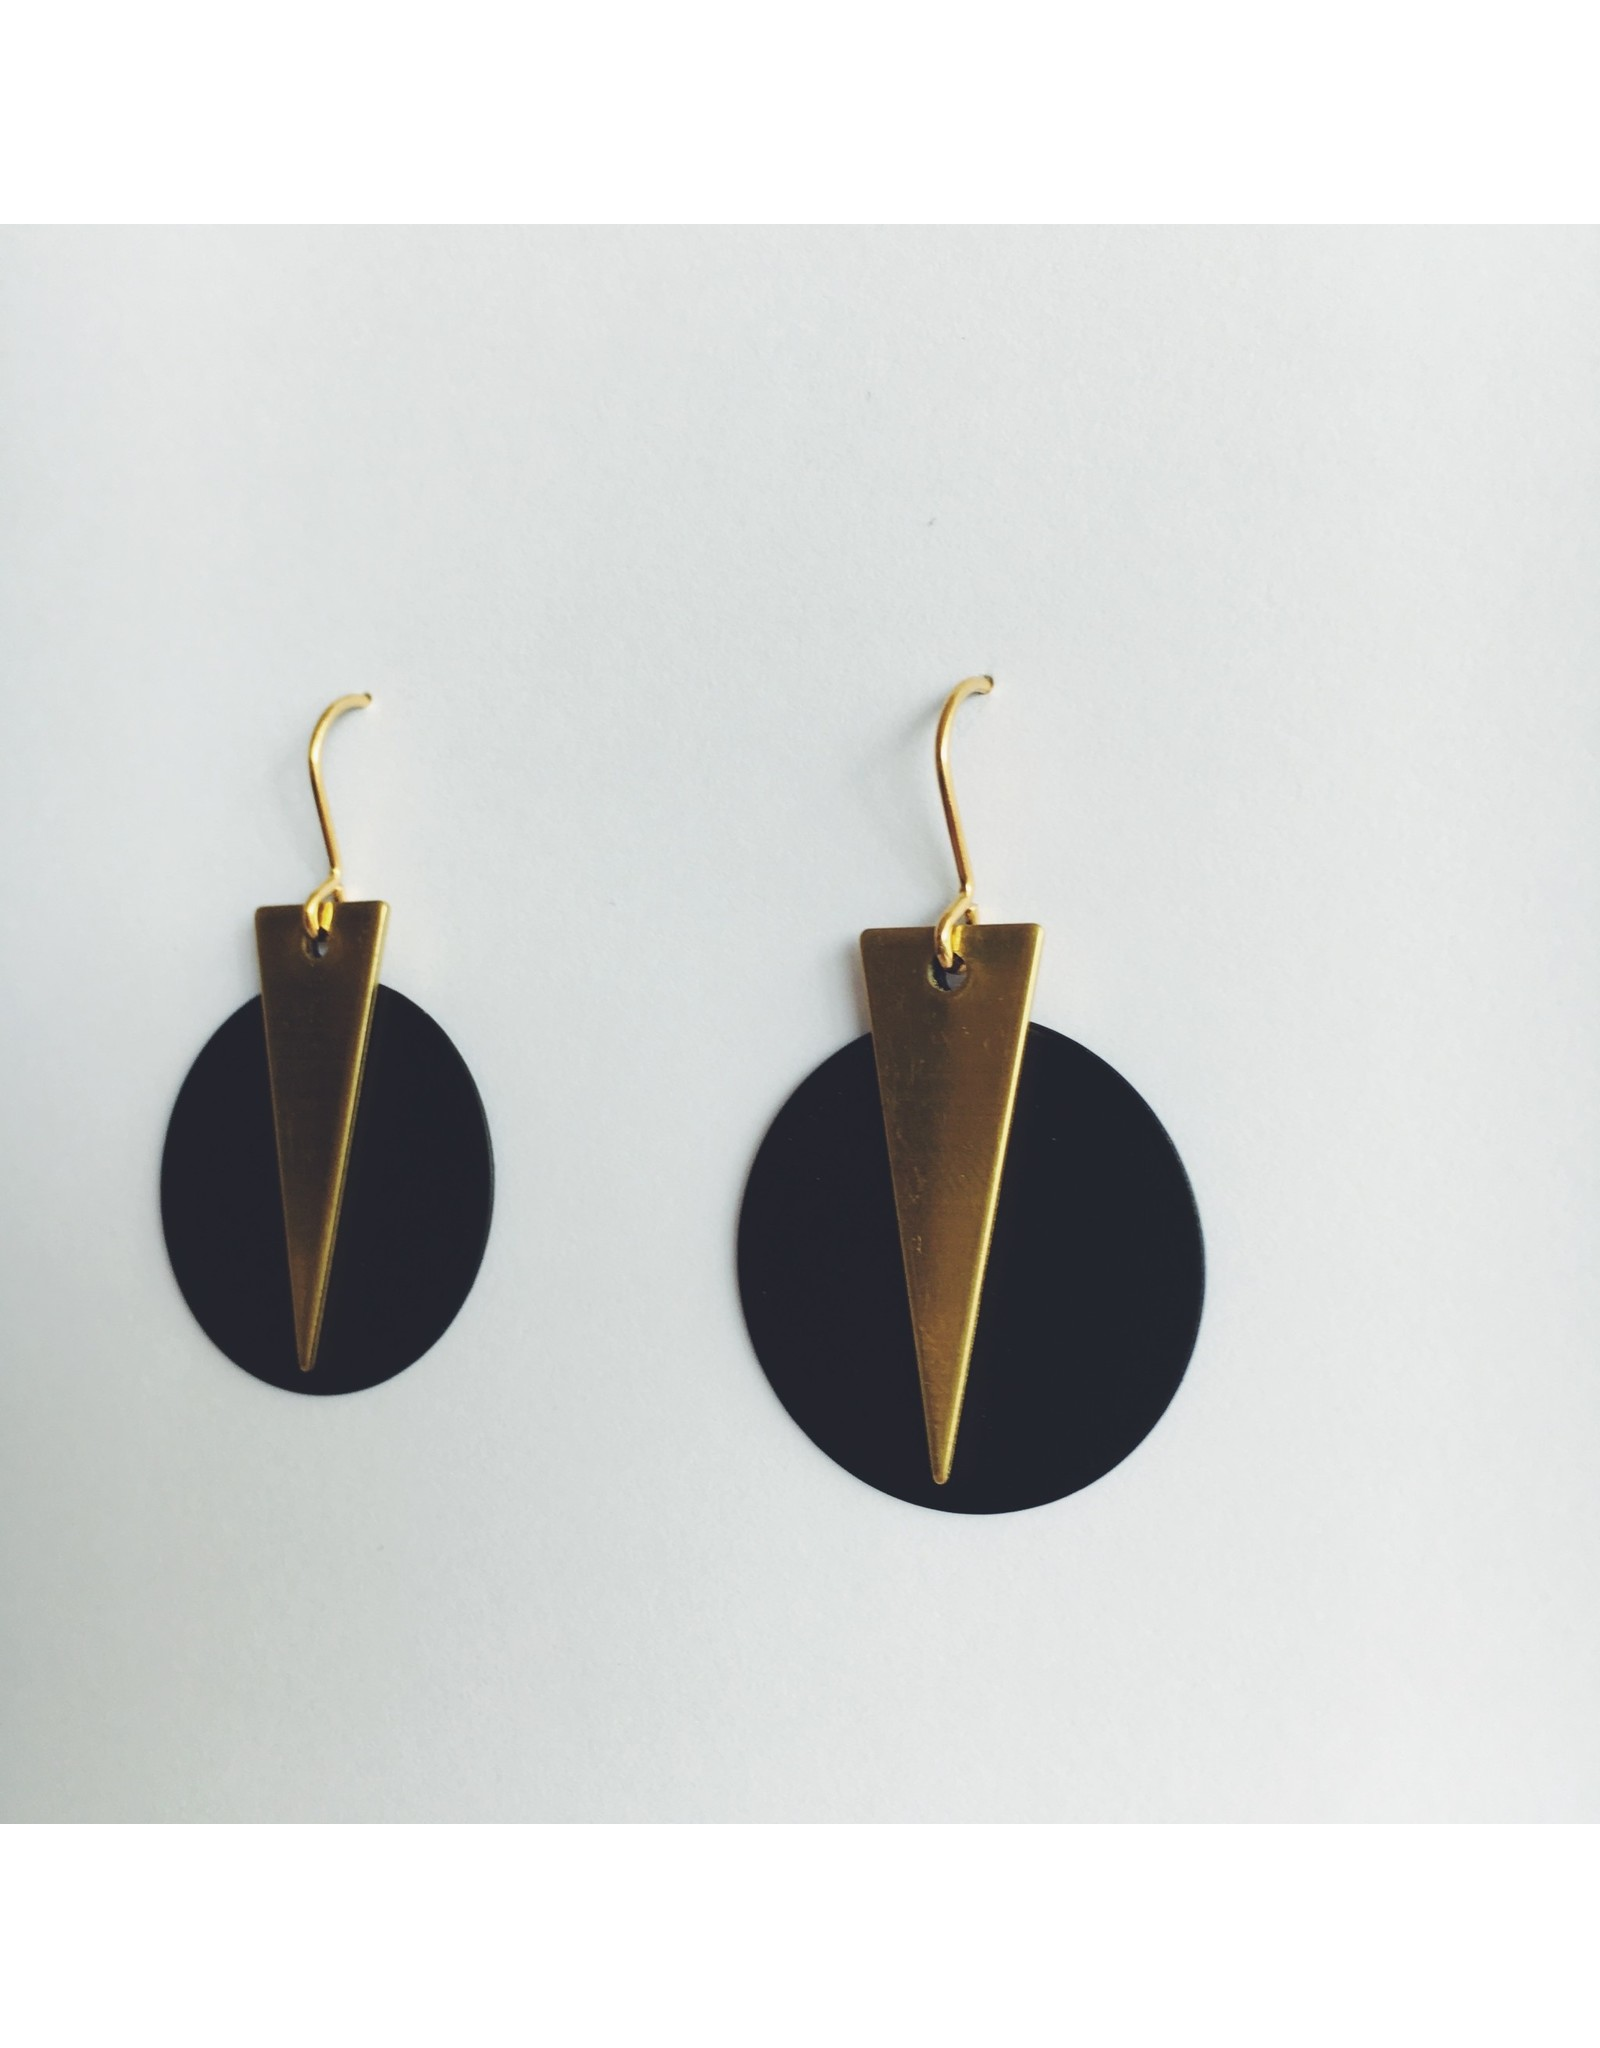 Brass Triangle and Black Disc Earrings